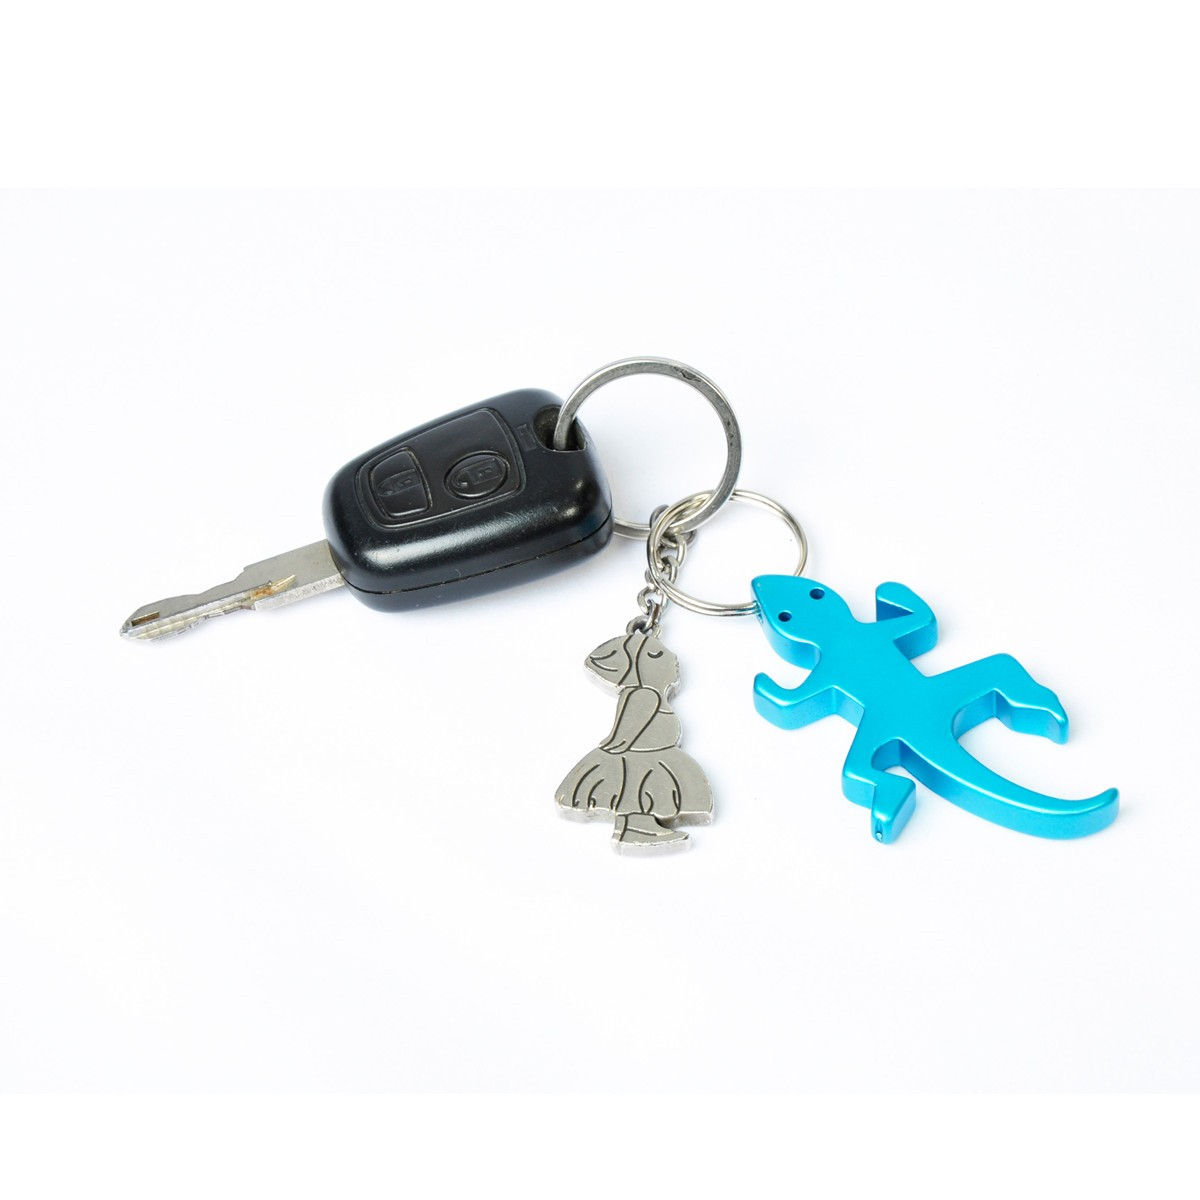 novel gecko bottle opener keychain key ring random color at banggood sold out. Black Bedroom Furniture Sets. Home Design Ideas